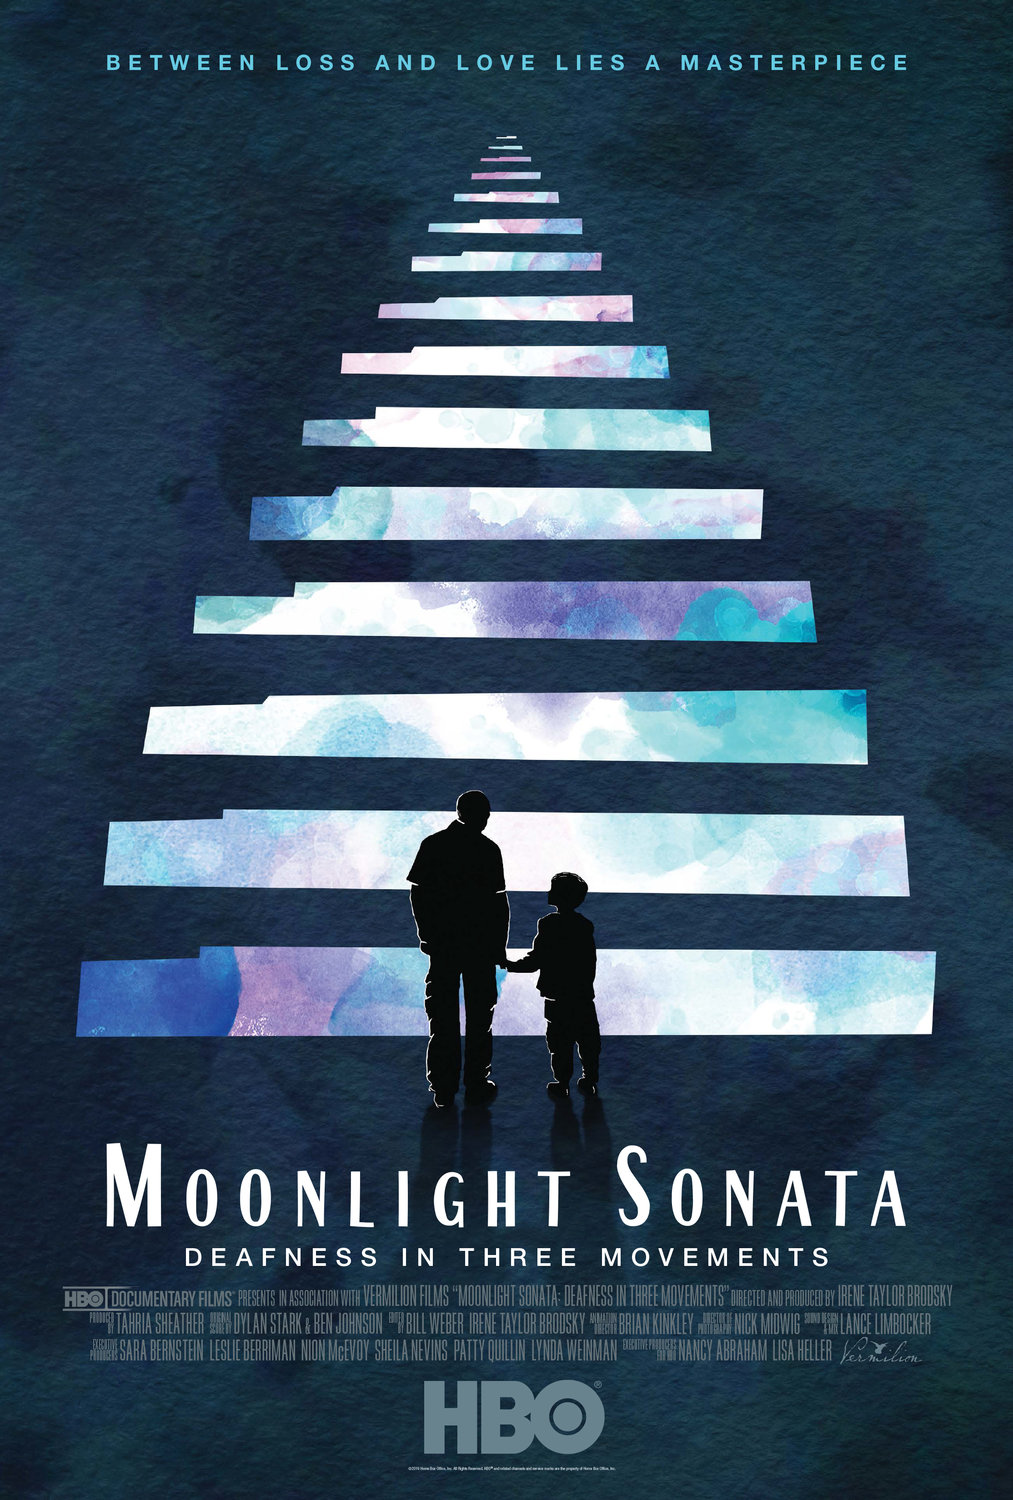 MOONLIGHT SONATA: DEAFNESS IN THREE MOVEMENTS is a deeply personal portrait of three lives, and the discoveries that lie beyond loss: a deaf boy growing up, his deaf grandfather growing old, and Beethoven the year he was blindsided by deafness and wrote his iconic sonata.